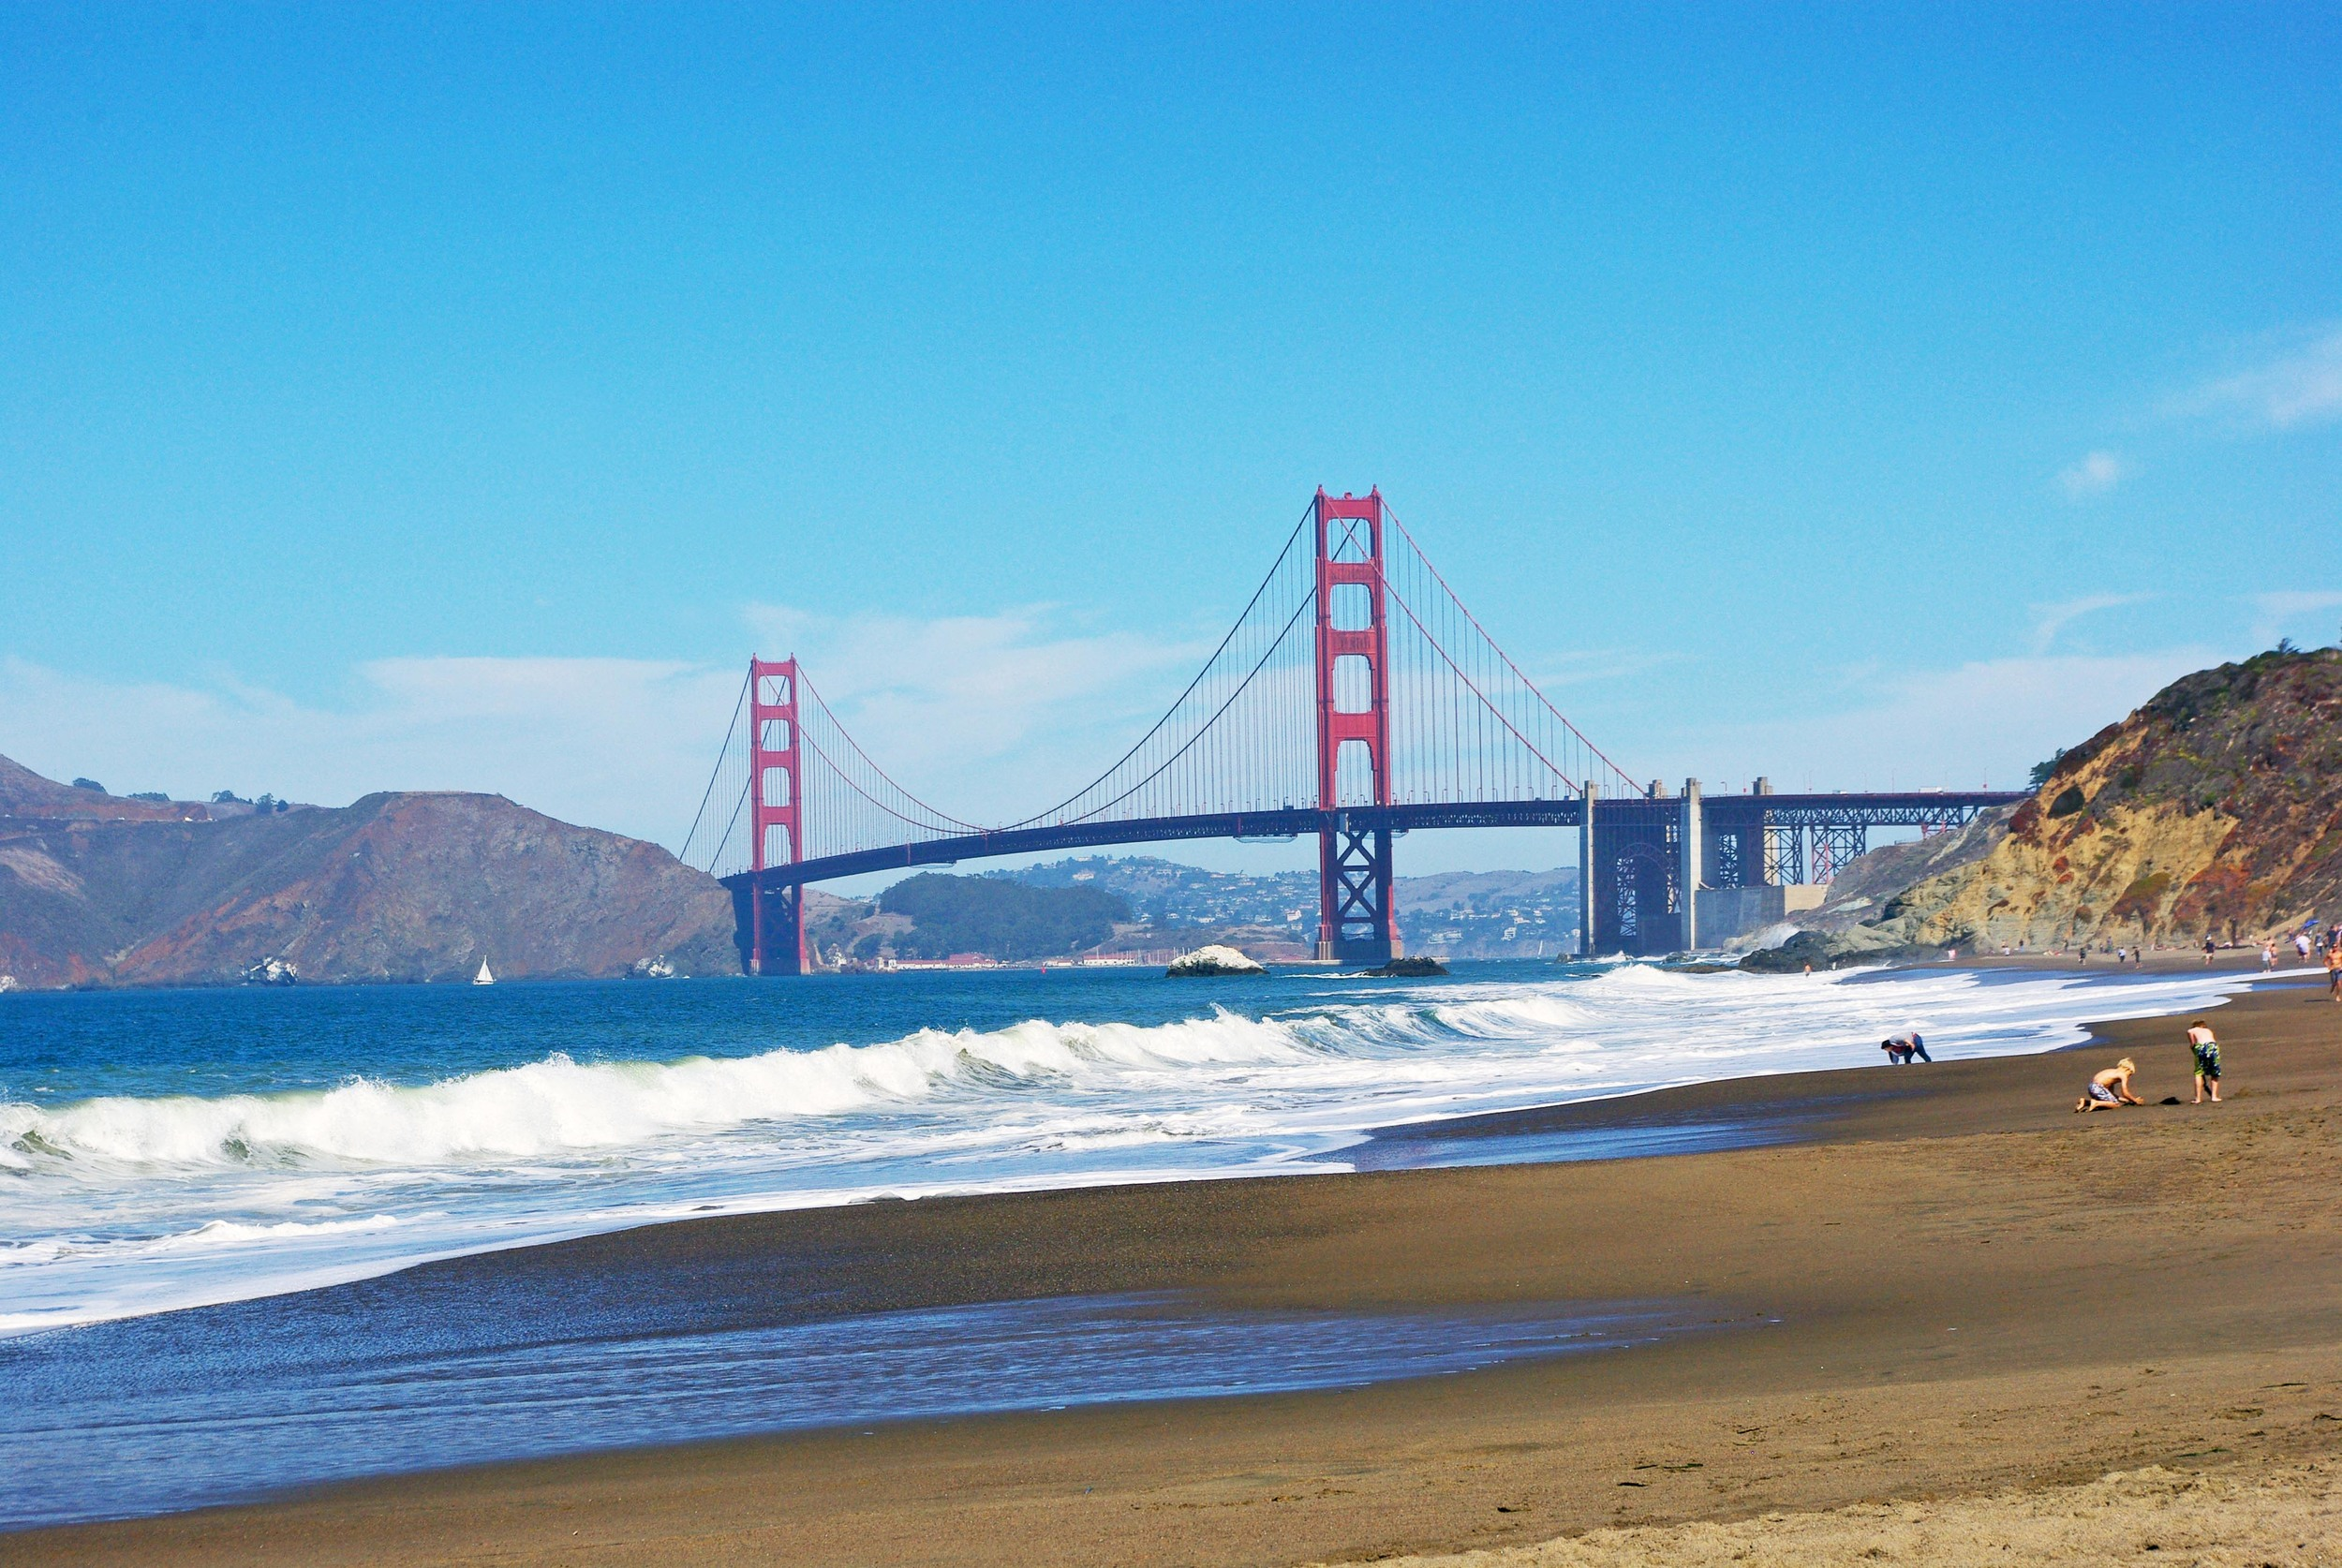 15.Relax along Baker beach for a great view of the GGB